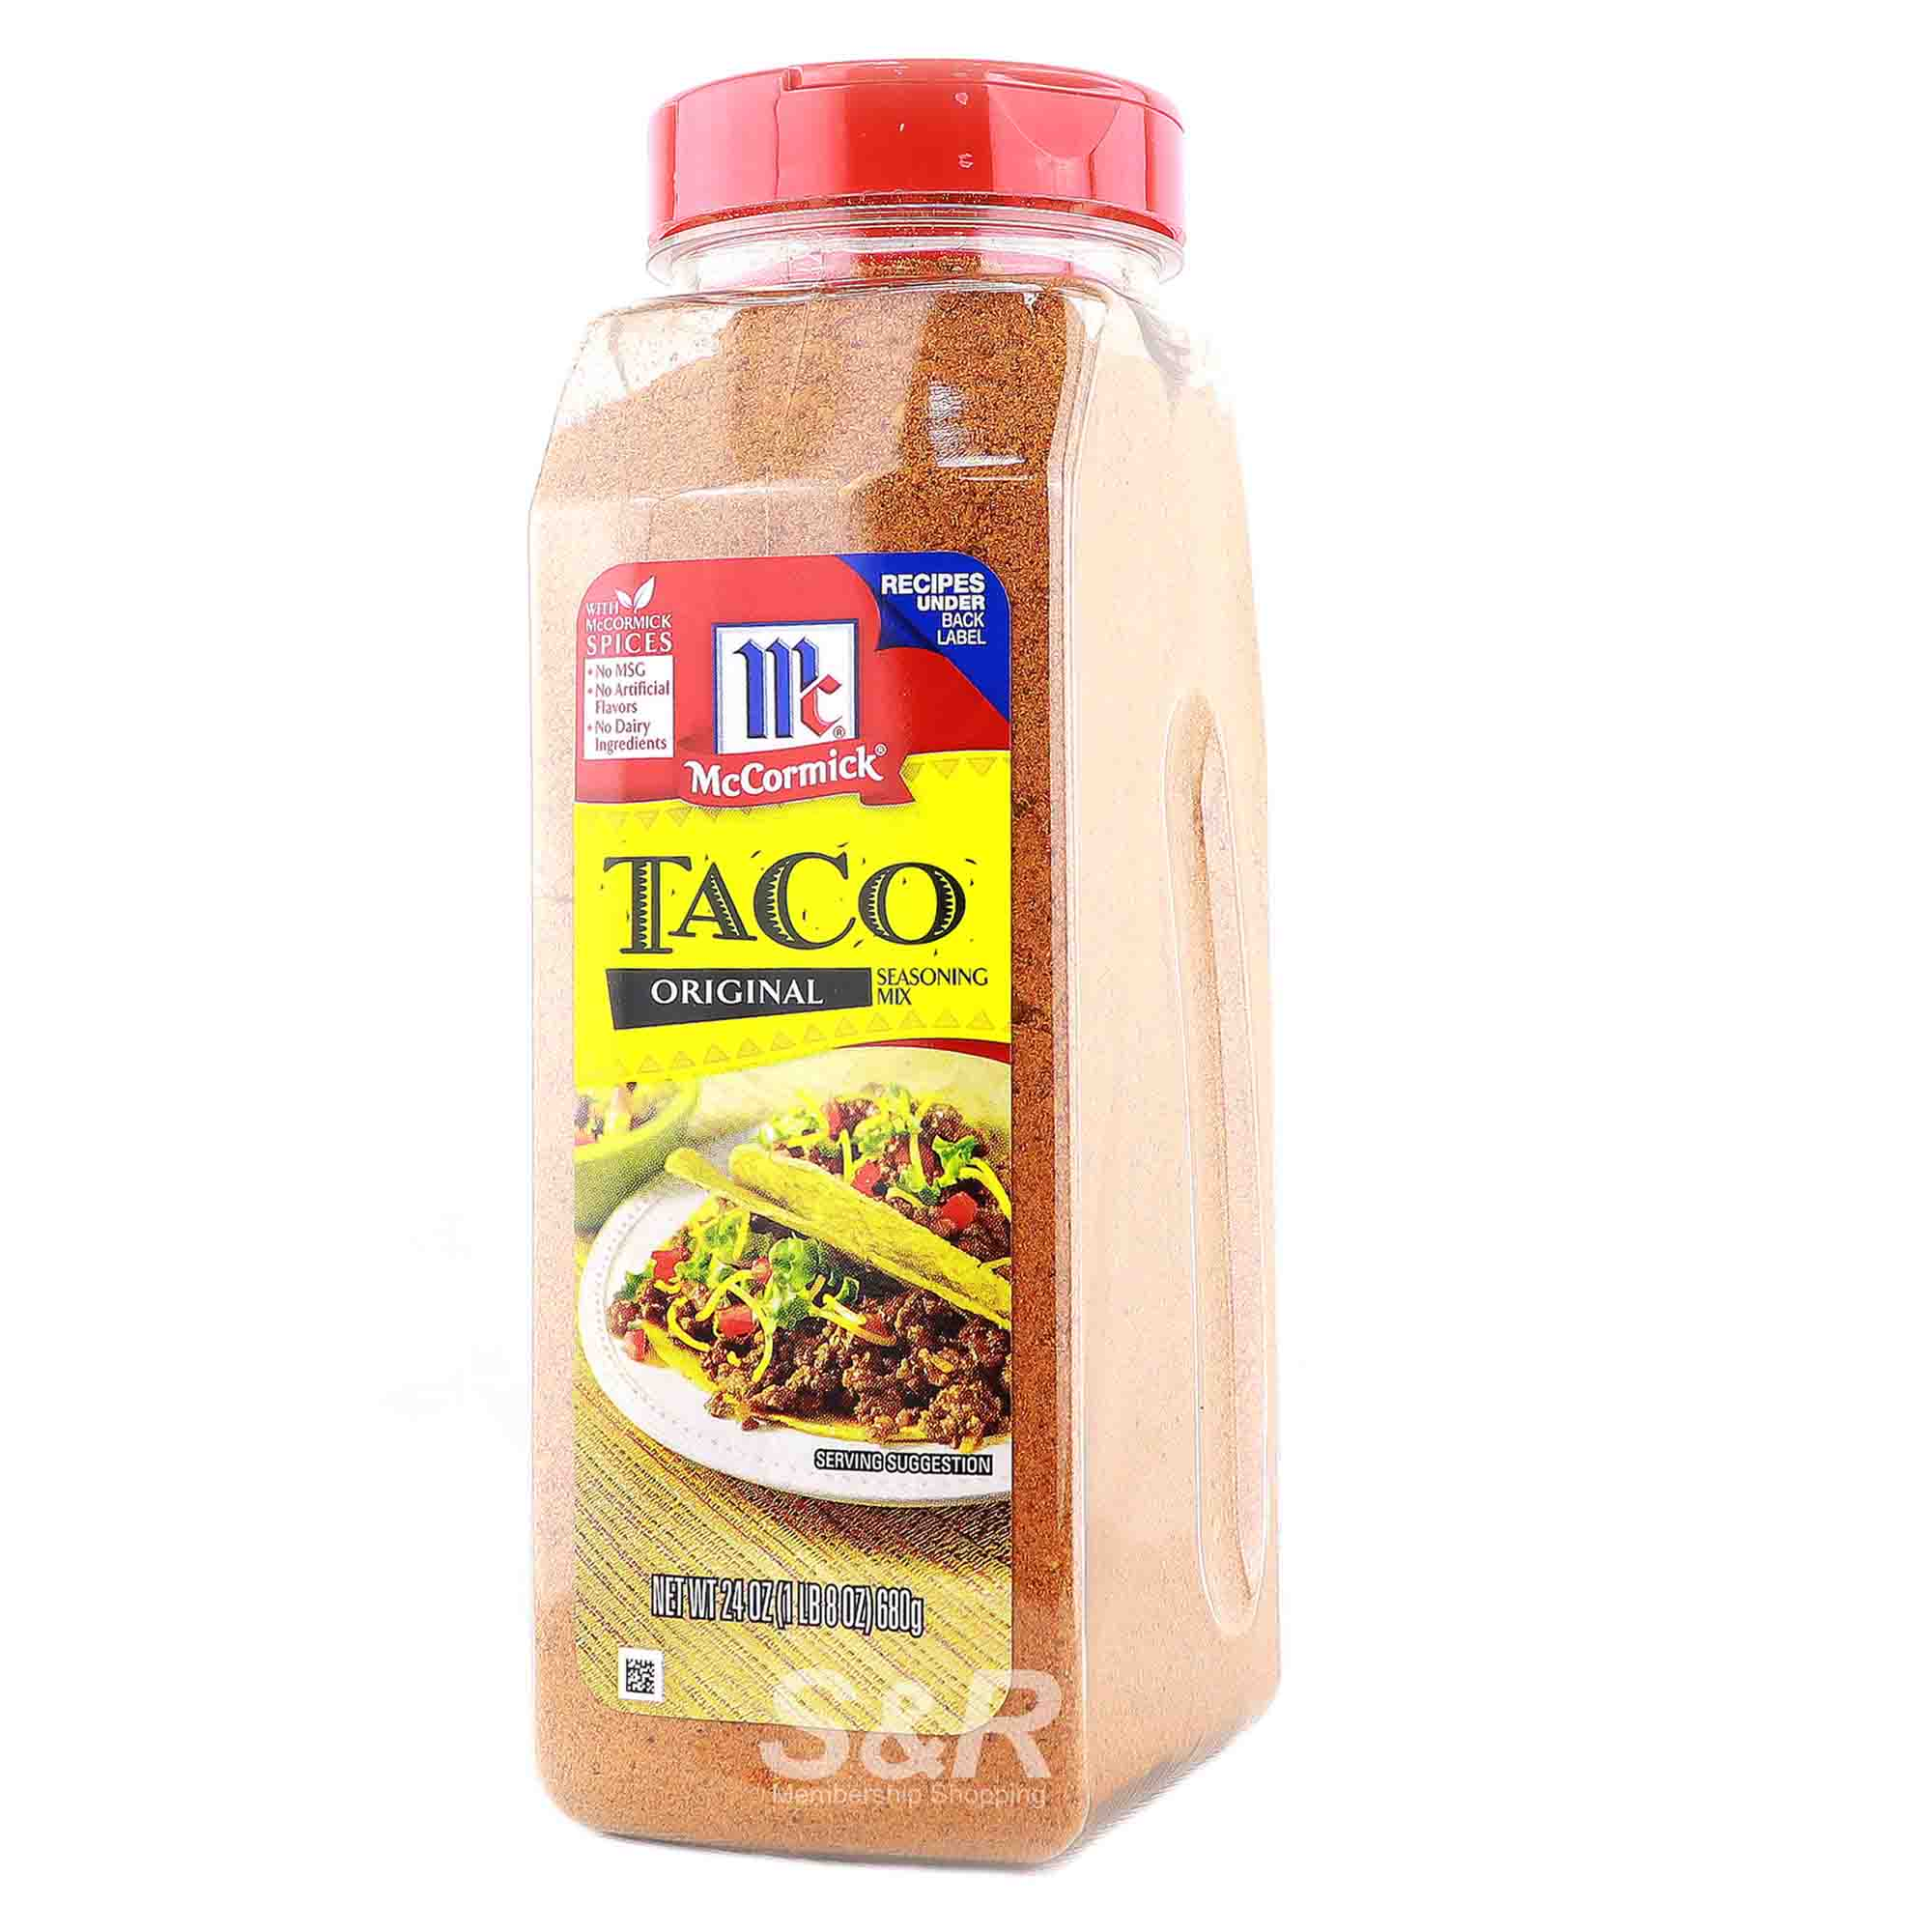 Mccormick Taco Seasoning Mix Original 680g